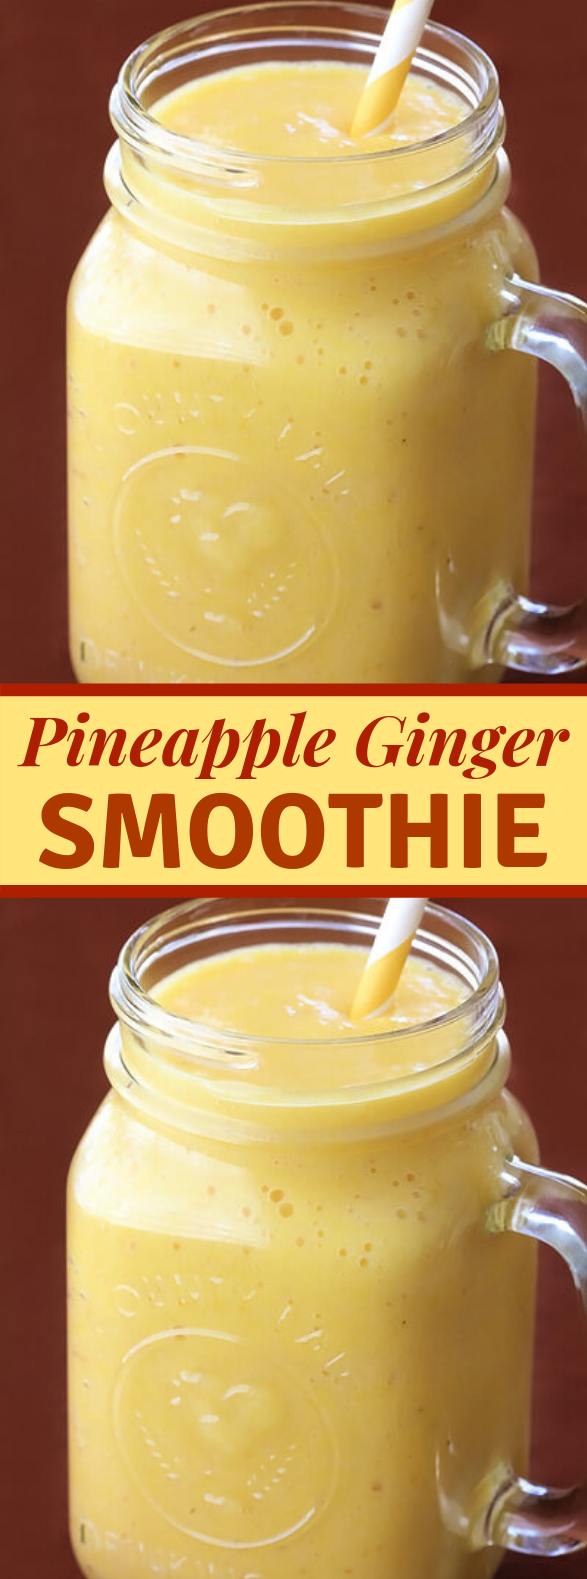 PINEAPPLE GINGER SMOOTHIE #gingerdrink #vegetarian